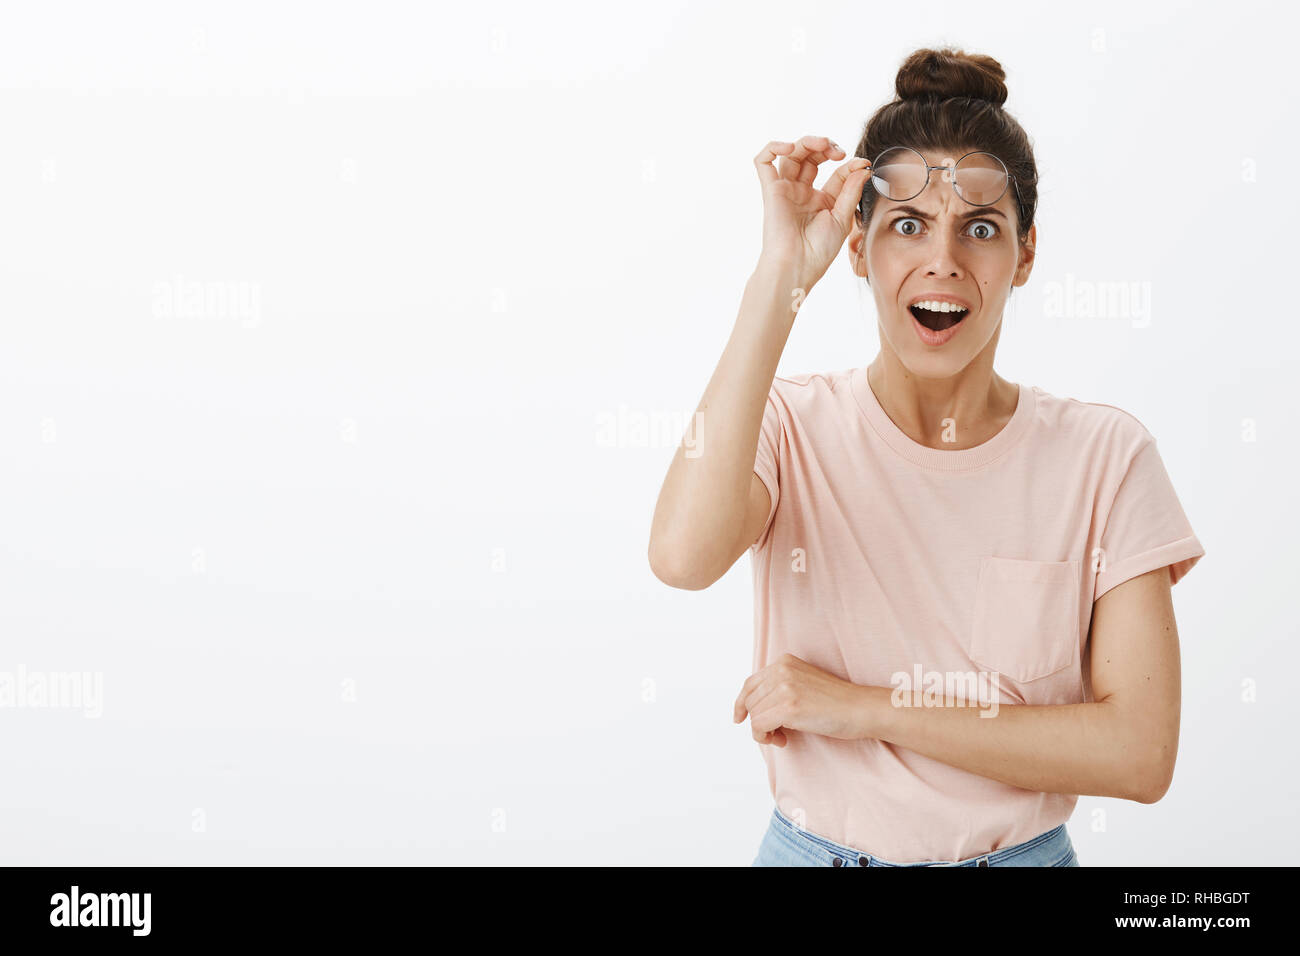 What heck. Portrait of shocked concerned and insulted young bothered woman taking off glasses, frowning and grimacing in disapproval and shook - Stock Image